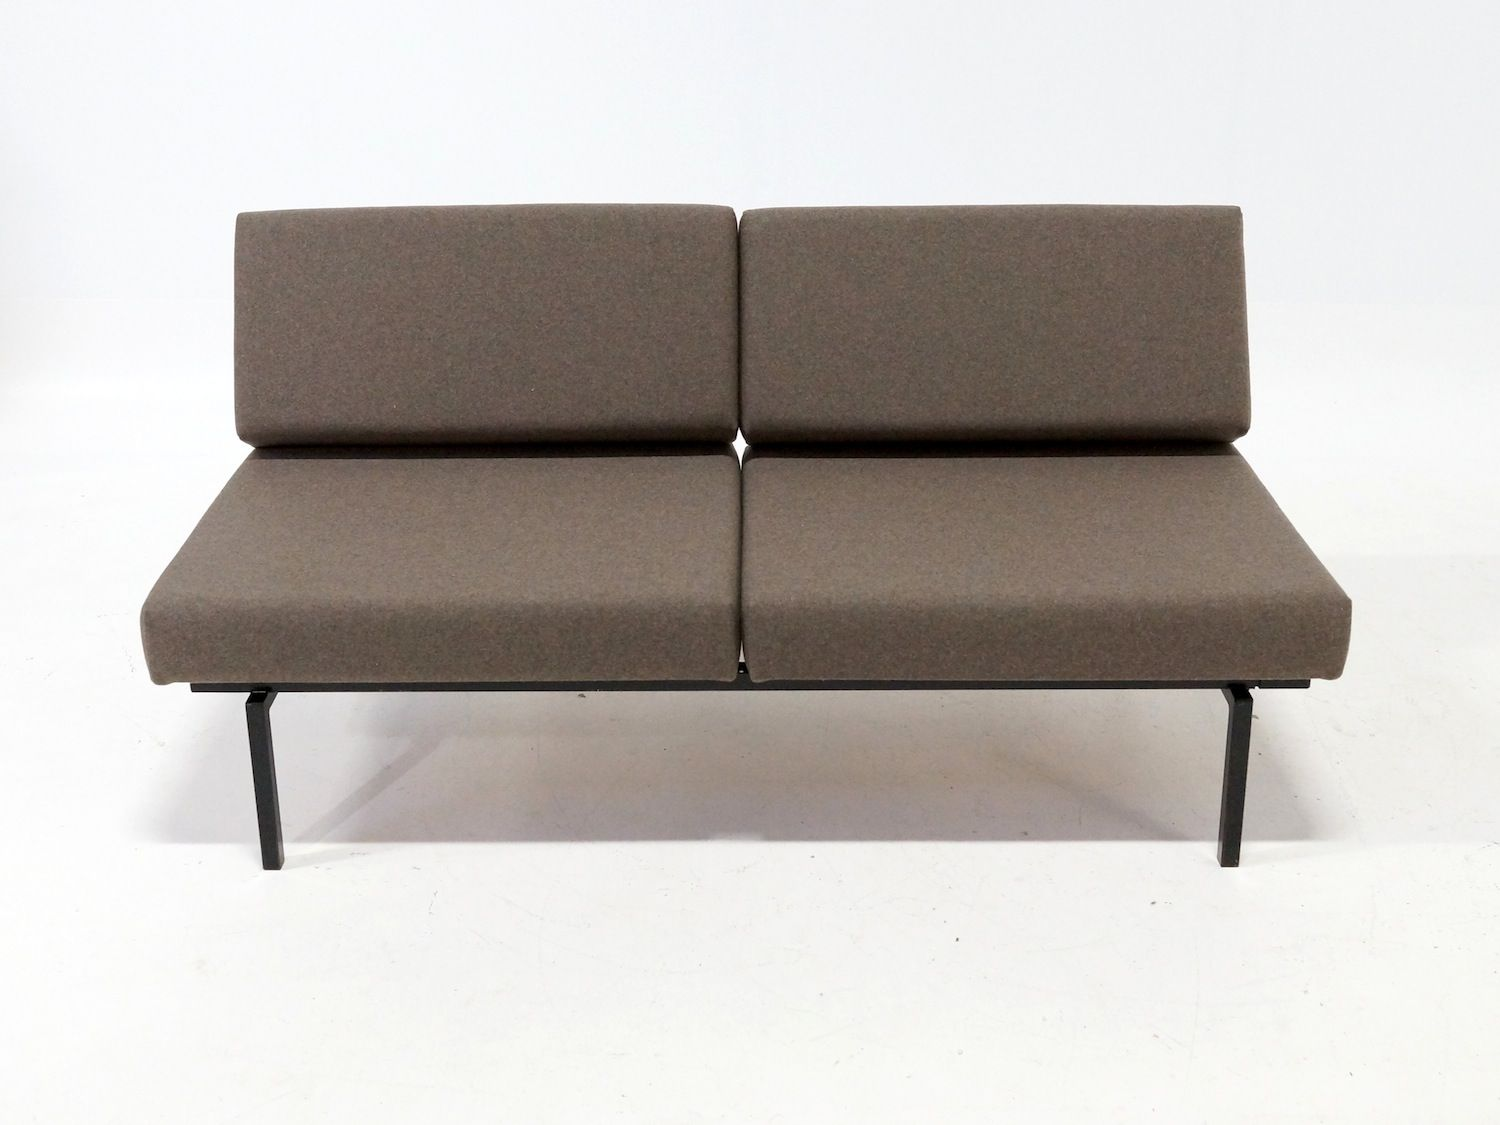 sofa von coen de vries f r devo 1950 bei pamono kaufen. Black Bedroom Furniture Sets. Home Design Ideas